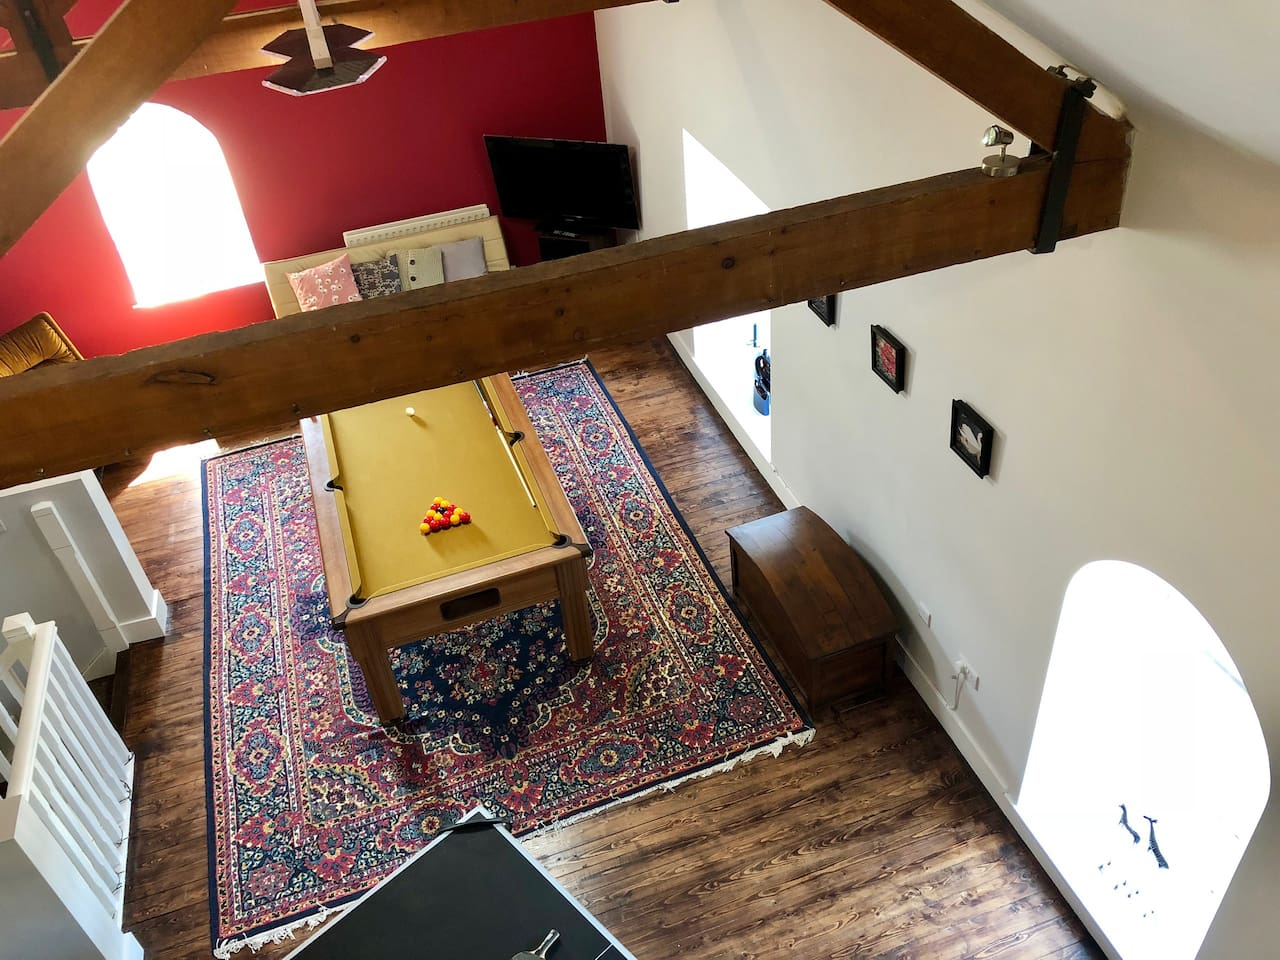 """Pool table 7""""x4"""", Table tennis, board games, Freeview TV, sofa bed."""